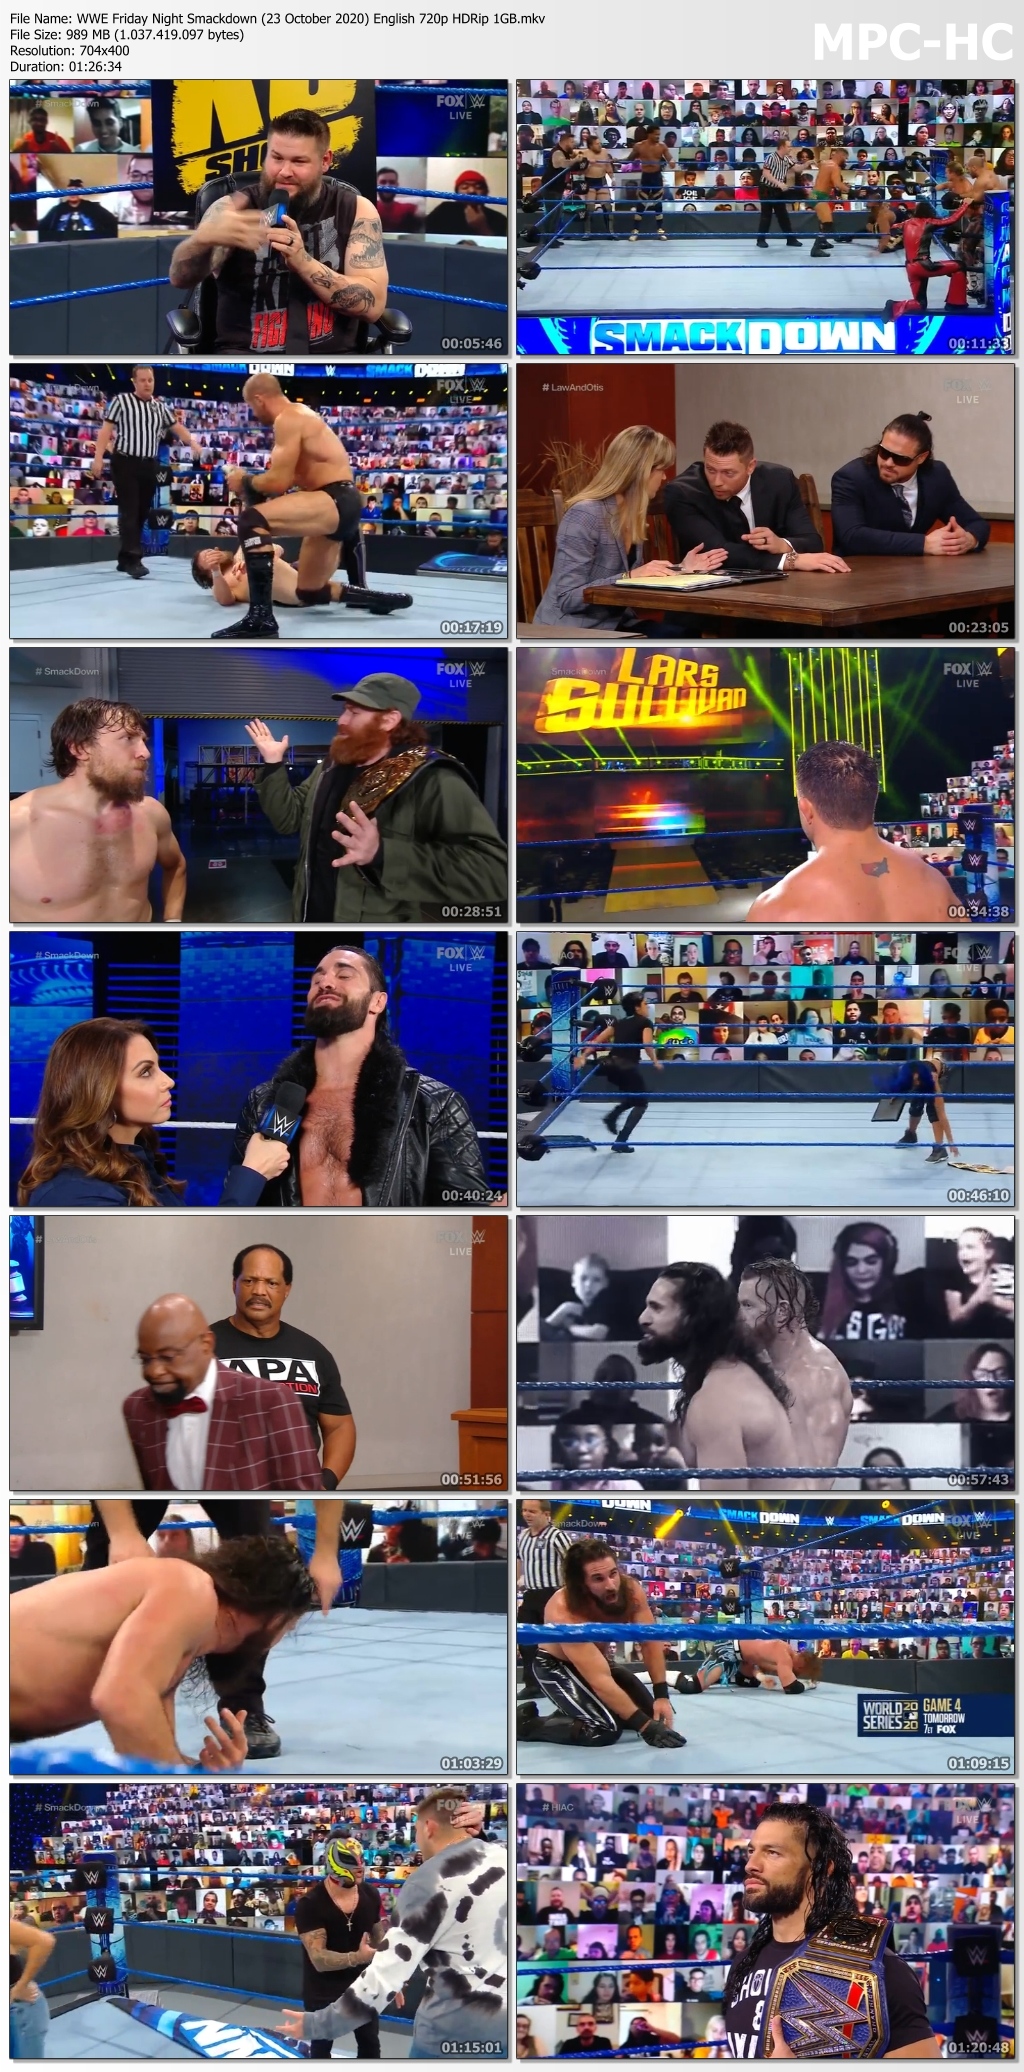 WWE-Friday-Night-Smackdown-23-October-2020-English-720p-HDRip-1-GB-mkv-thumbs